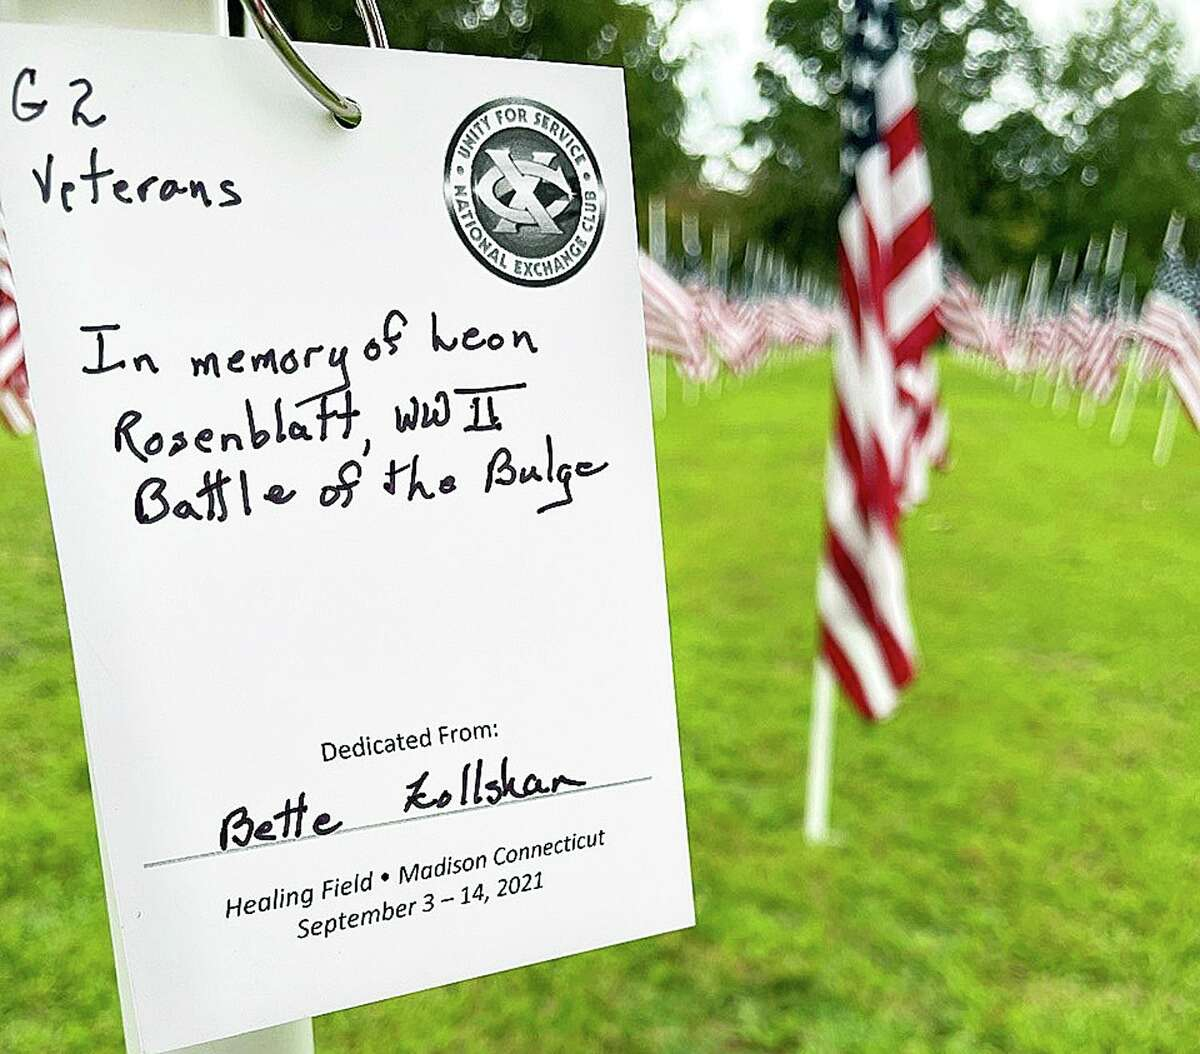 The Healing Field, is dedicated to 9/11 victims and survivors, active military, veterans, first responders and COVID heroes.